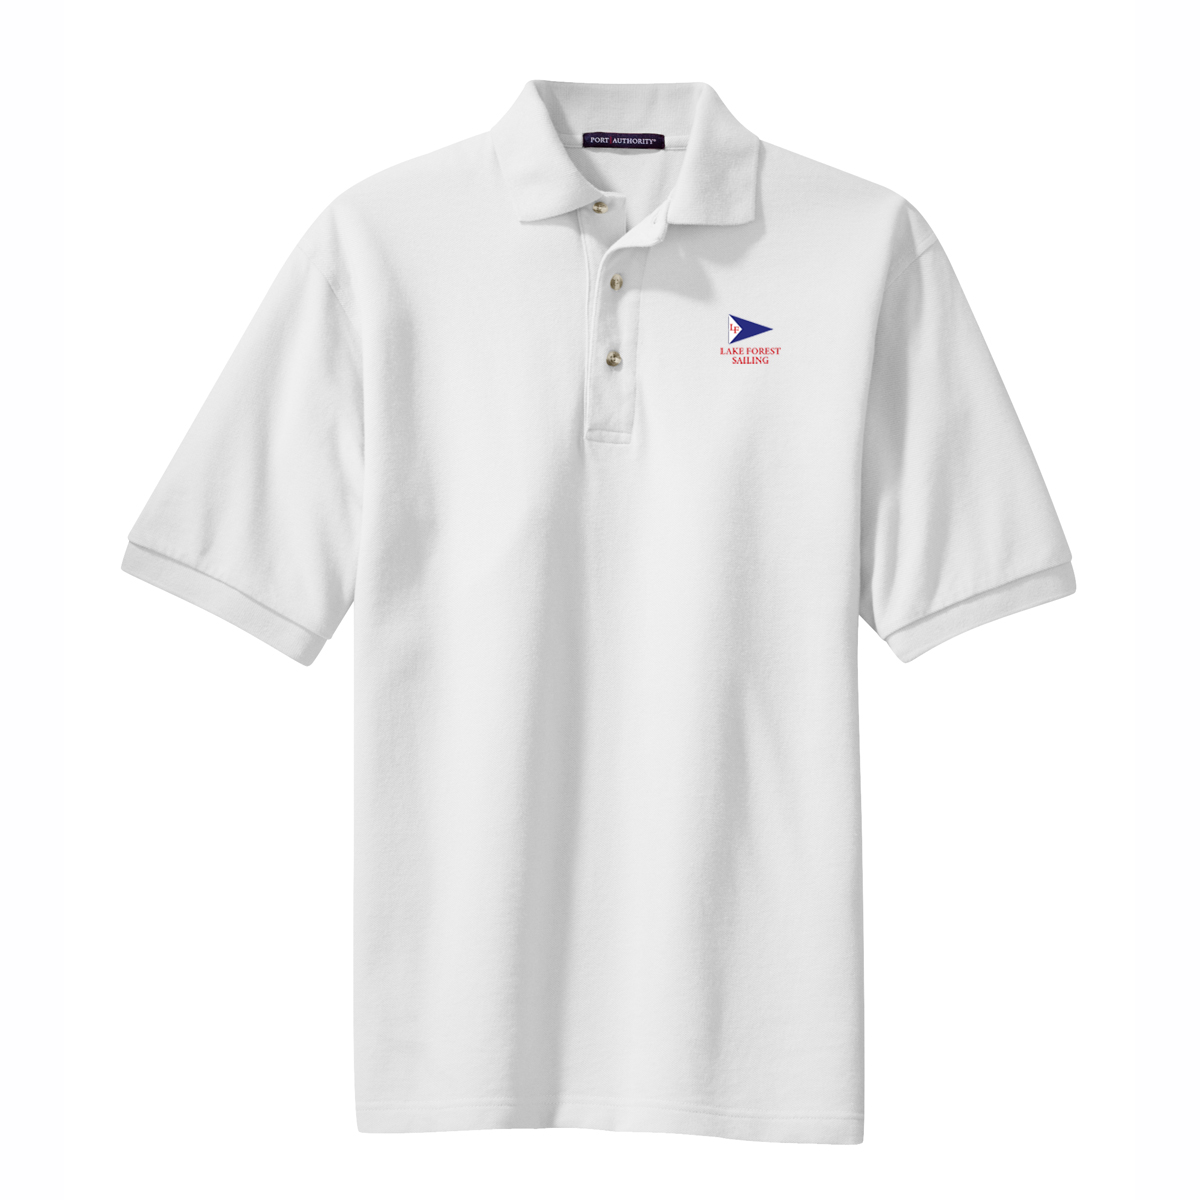 LAKE FOREST SAILING M''S COTTON POLO